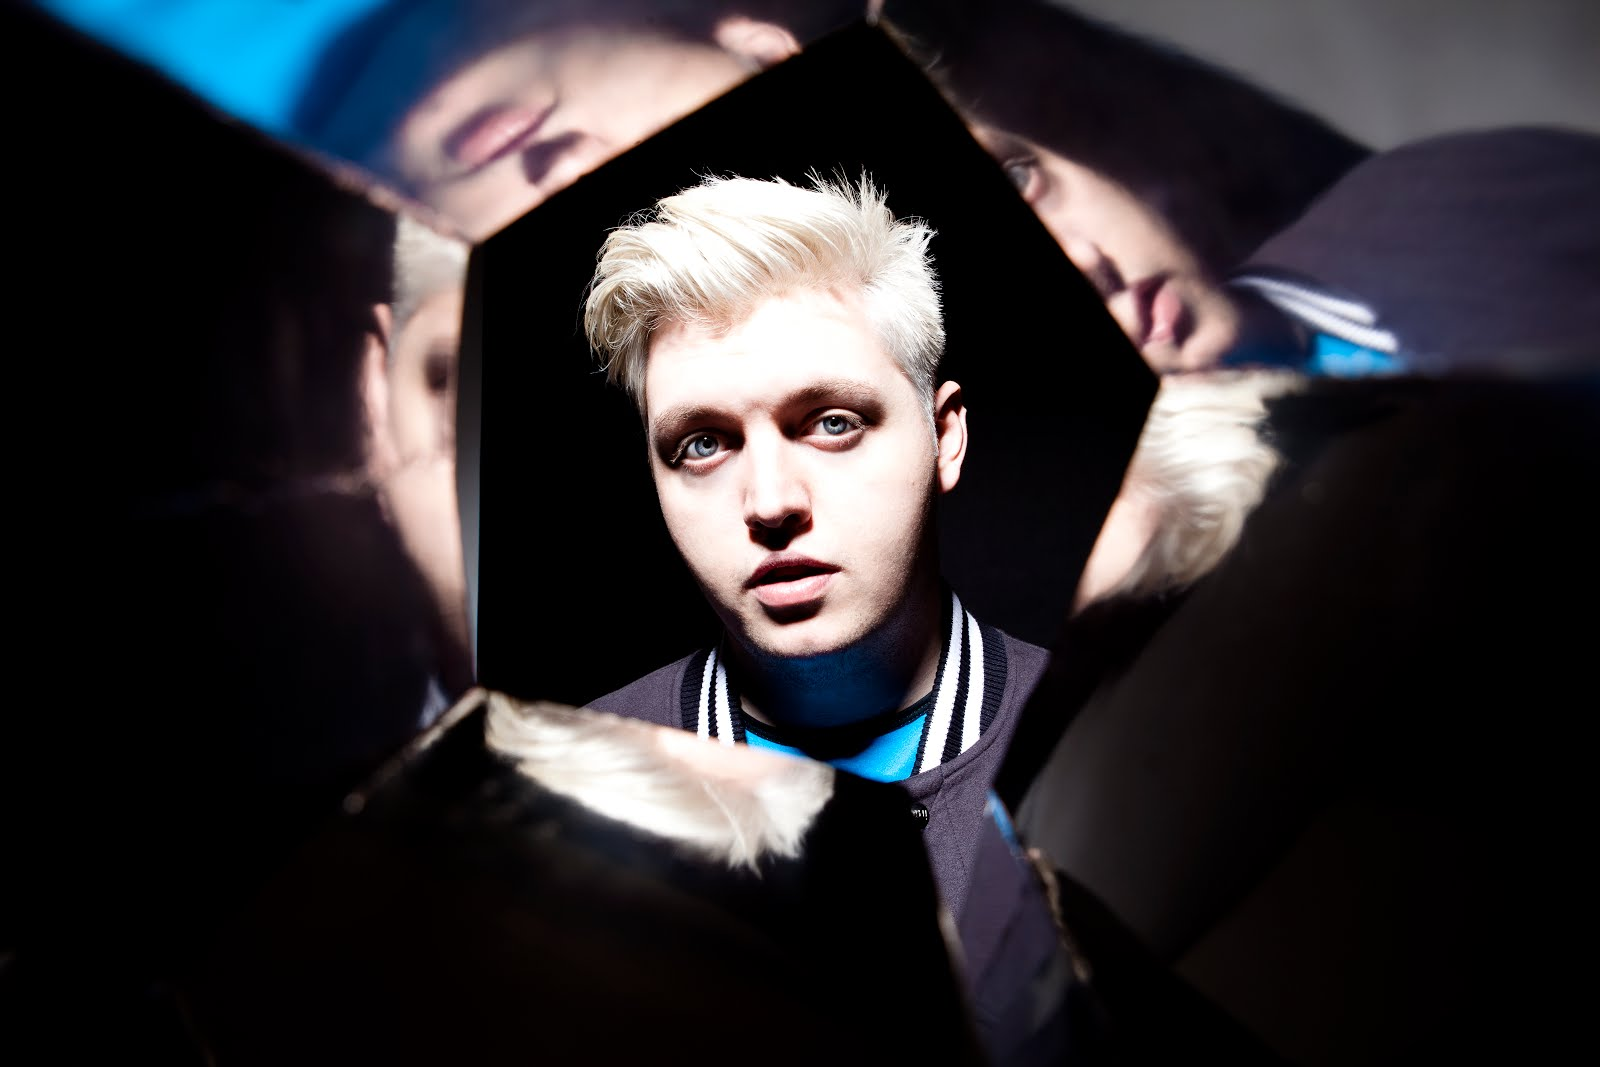 Flux Pavilion has worked with the likes of DJ Fresh, Example and Nero. Photo: Live Nation PR